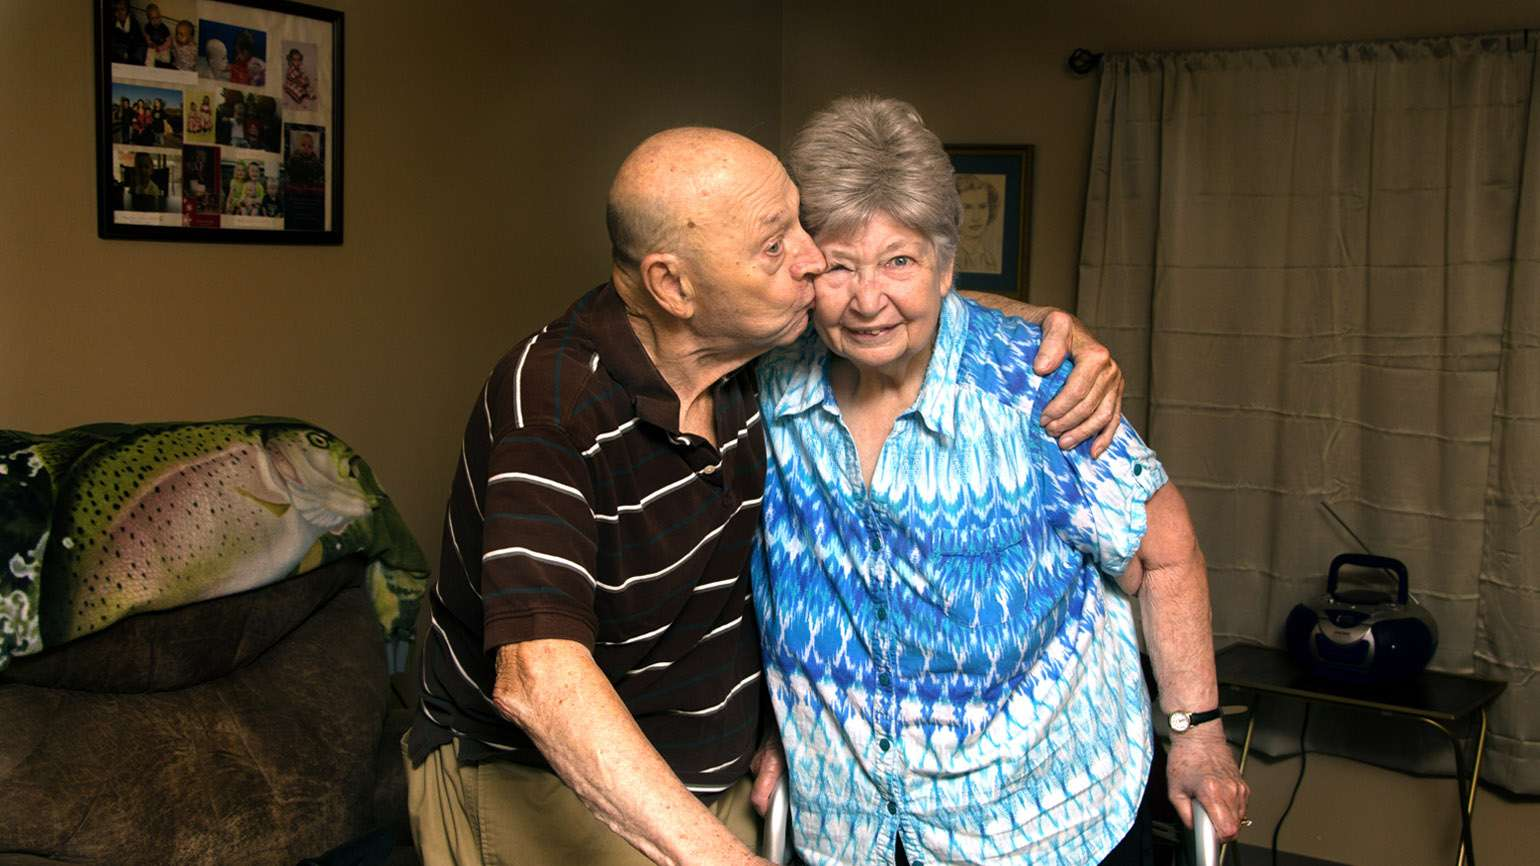 James Motter kisses his wife Eileen. The Ohio couple has been married 65 years.